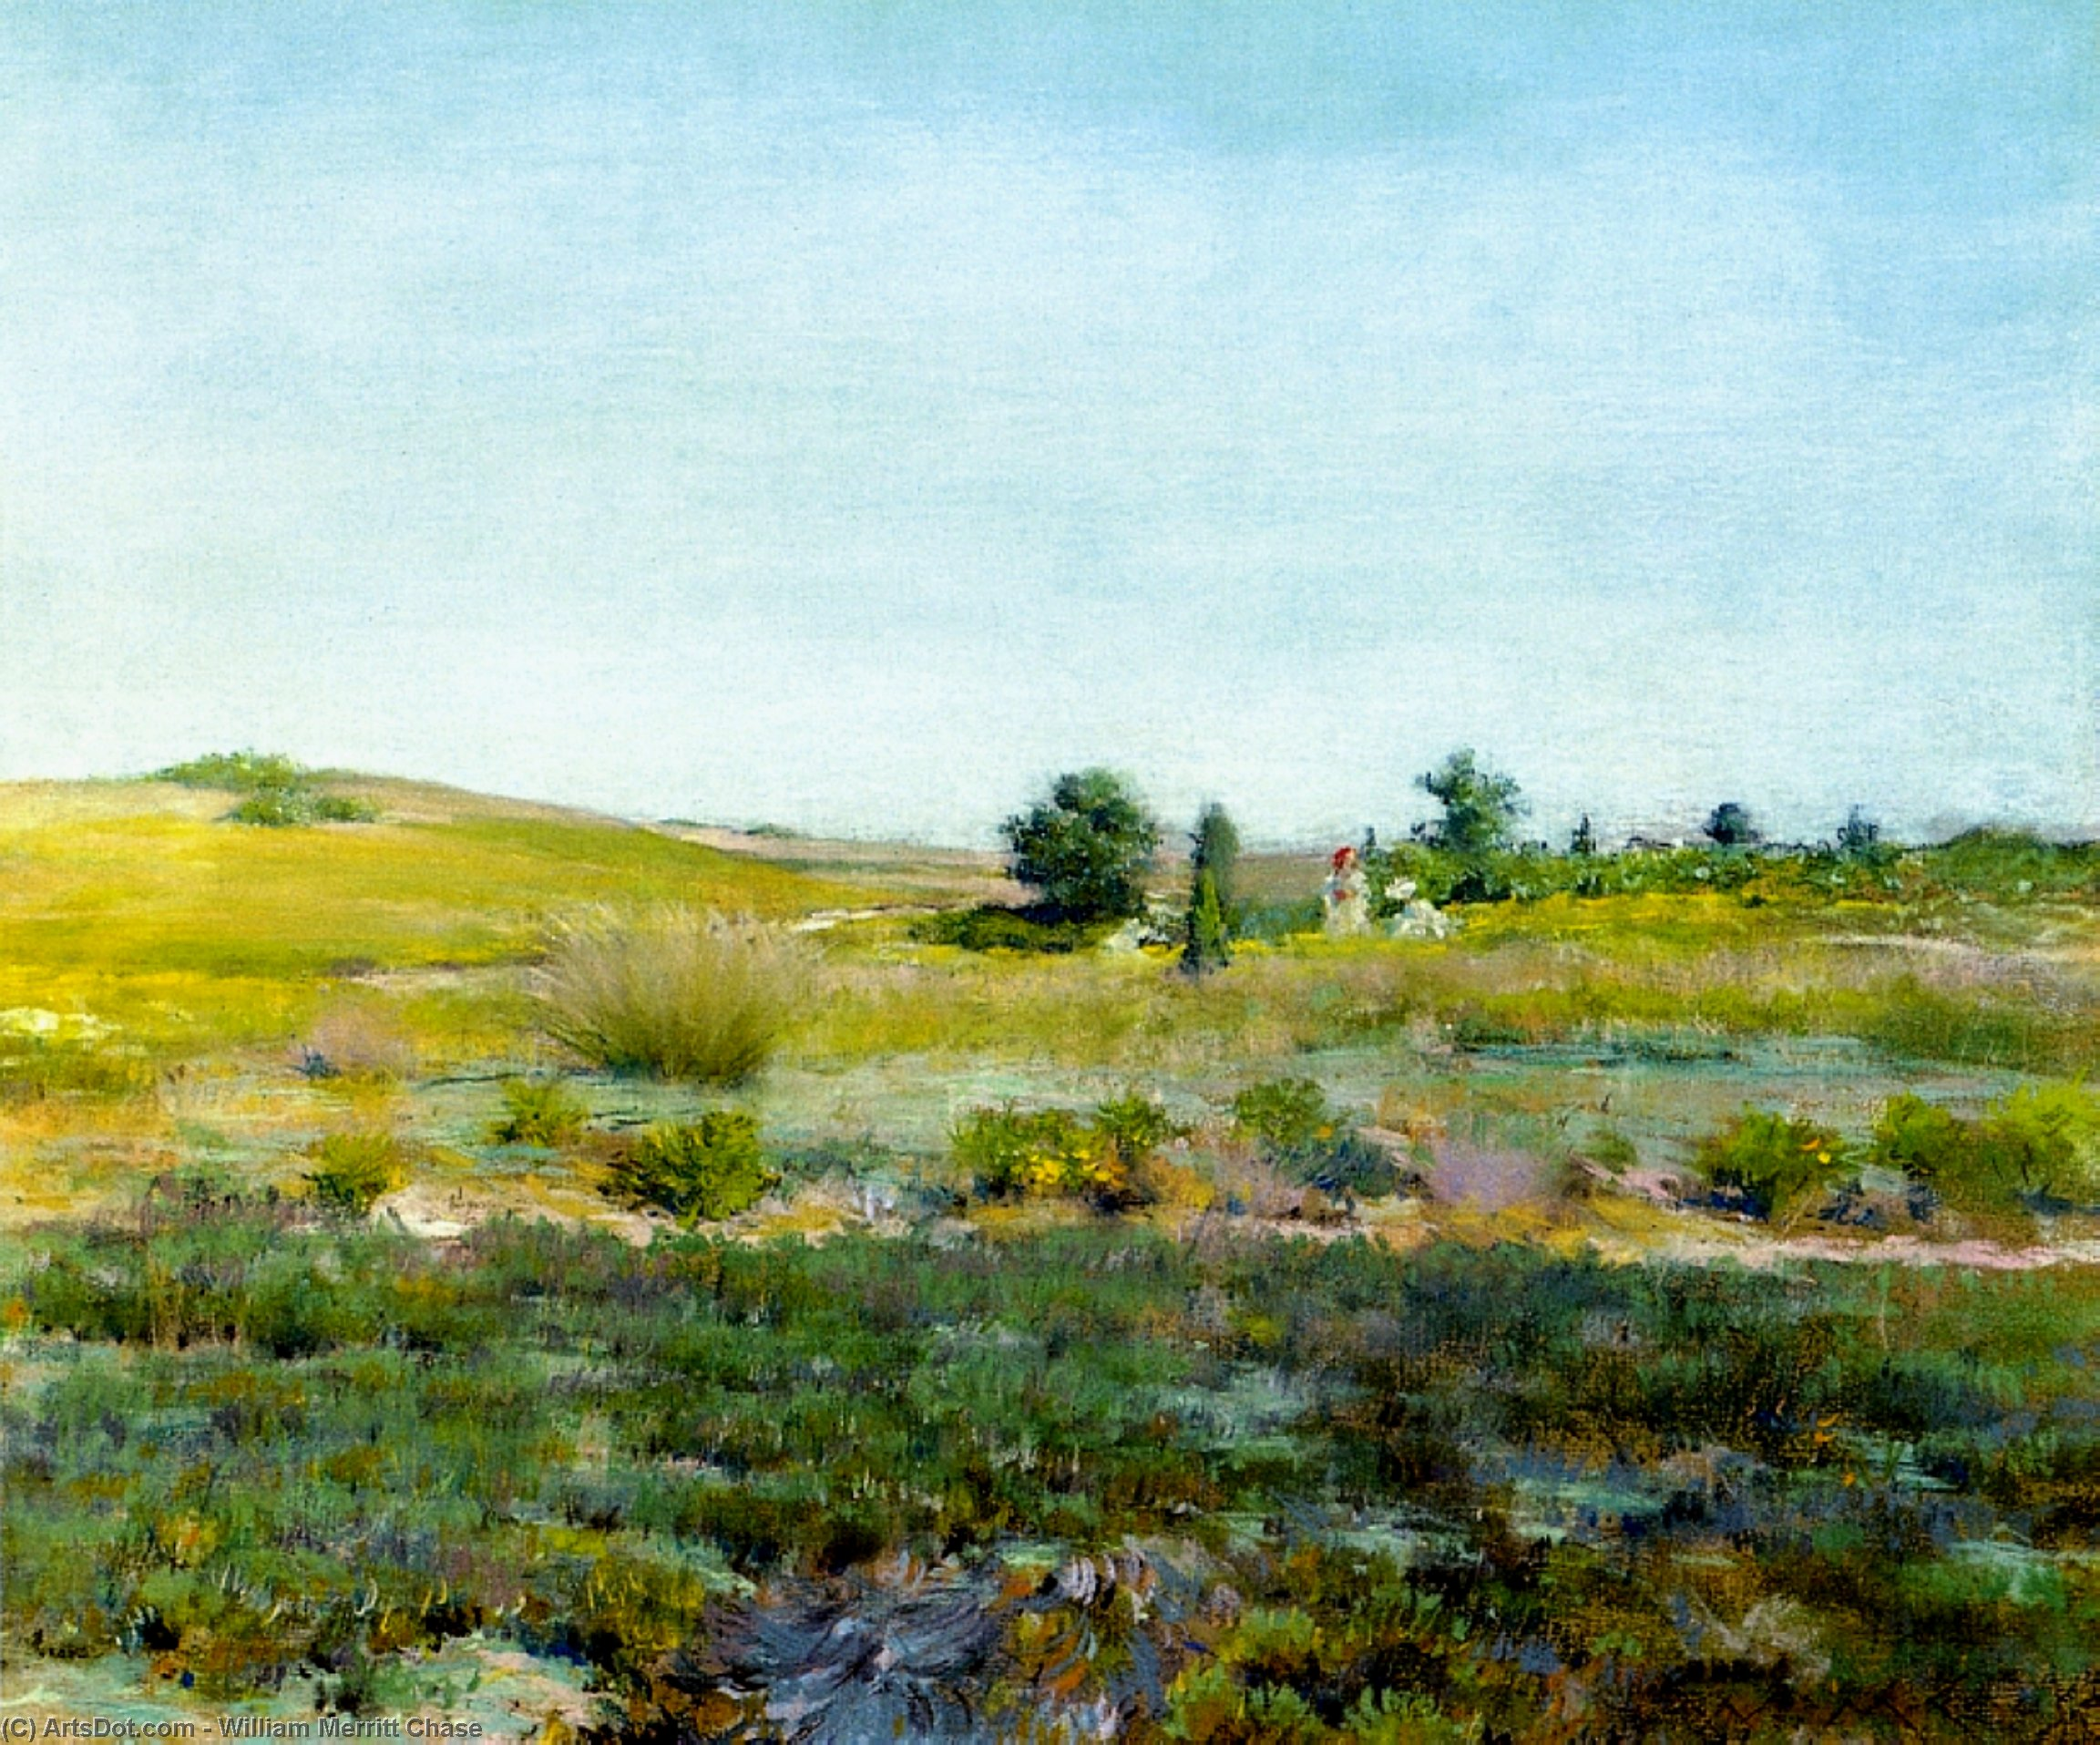 Shinnecock Colline , Estate, 1895 di William Merritt Chase (1849-1916, United States) | Riproduzione Art | ArtsDot.com